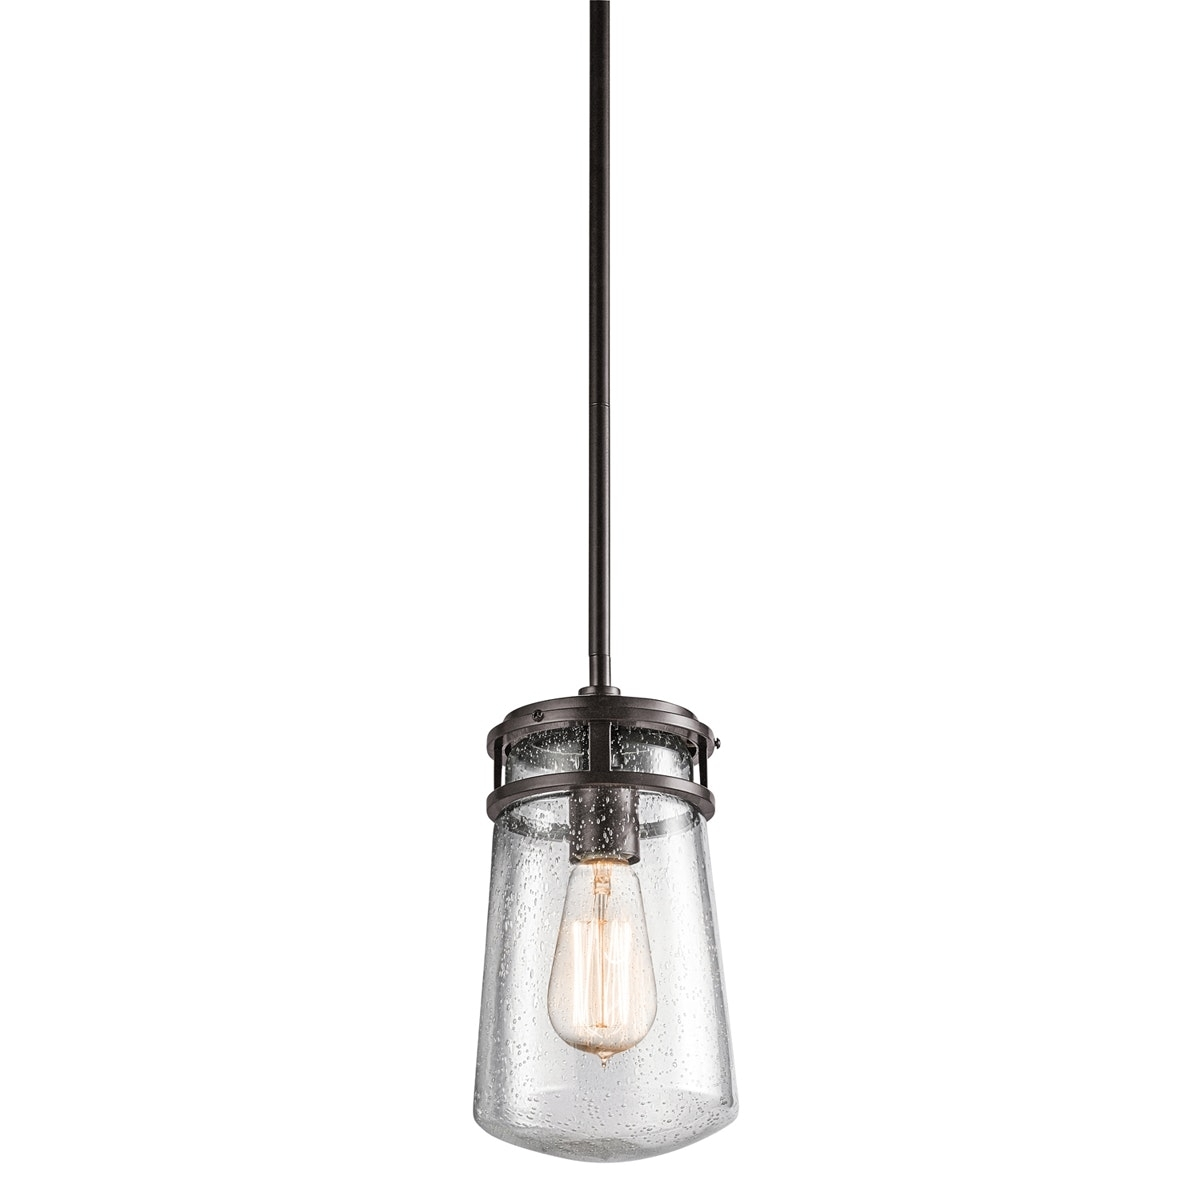 Coastal Outdoor Light Fixtures Best Exterior Lighting Photo On Inside Nautical Outdoor Hanging Lights (View 8 of 15)